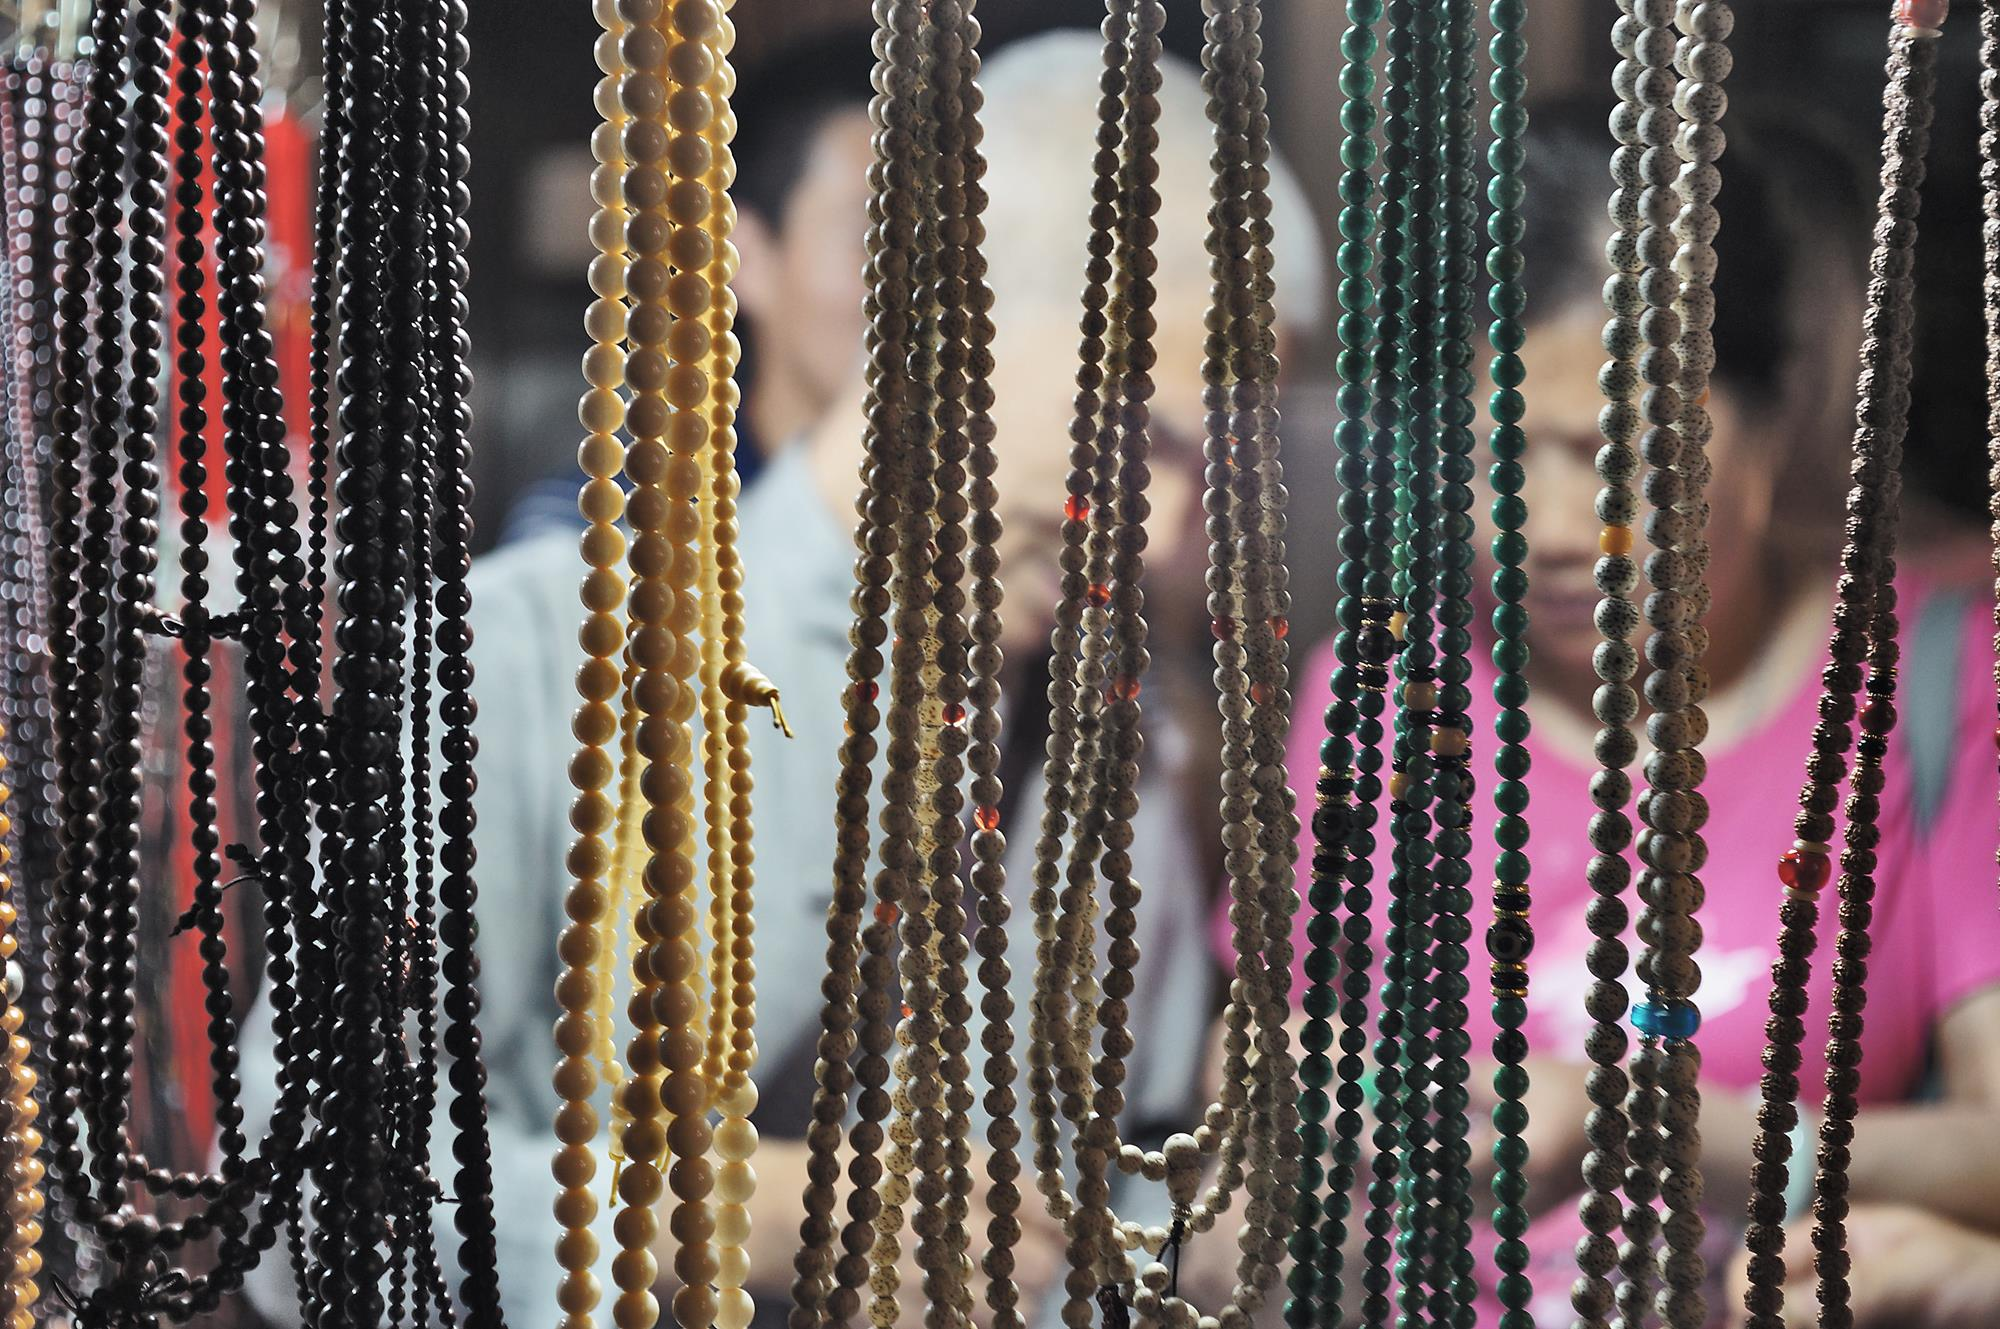 beads for sale on night market